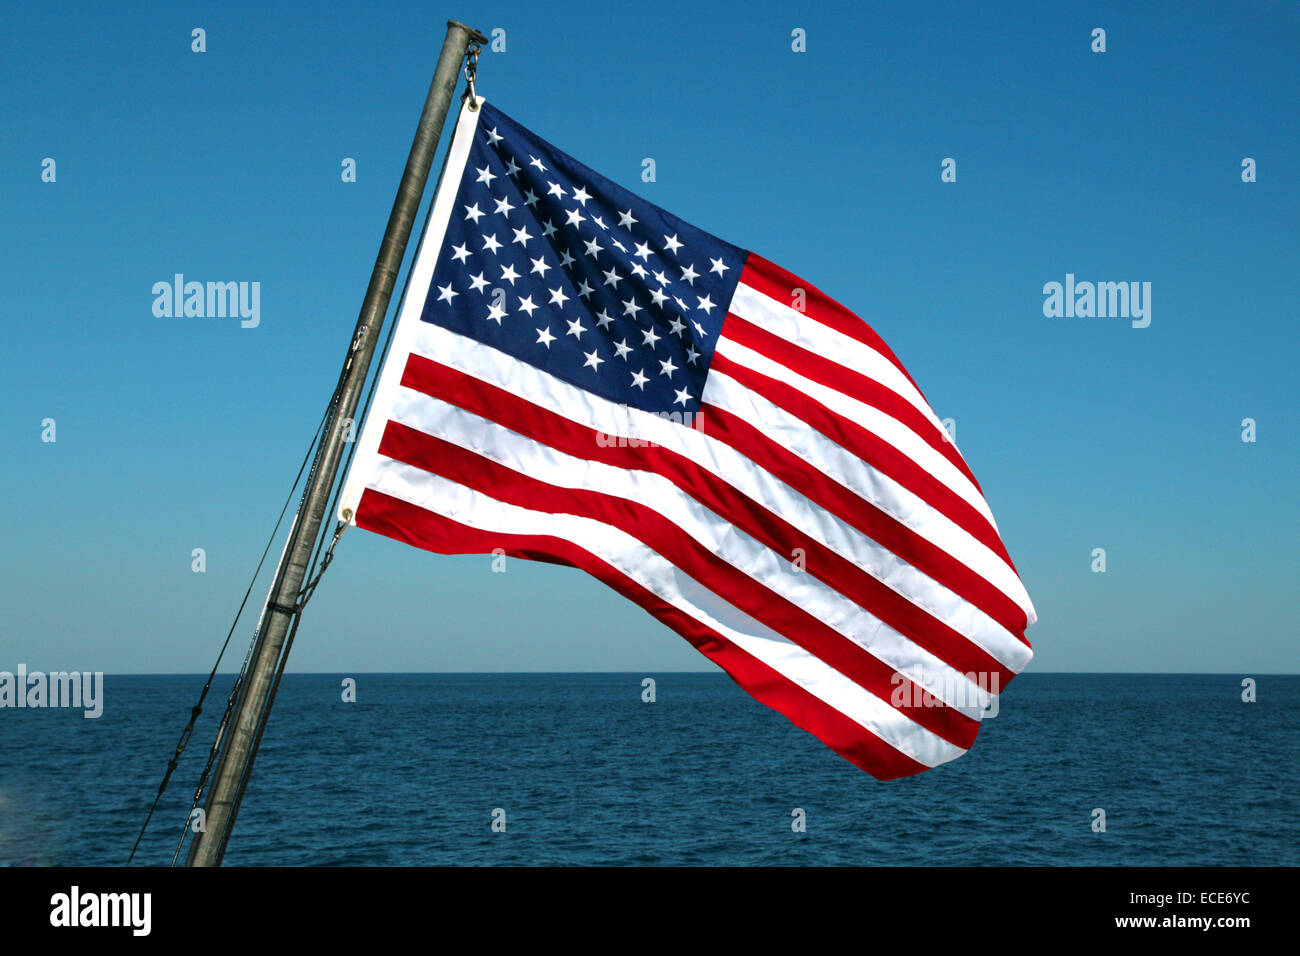 Flagge Amerikanische Flag American Amerika Fahne Fahnen Amerikanisch typisch typical America Stars and Stripes red Stock Photo